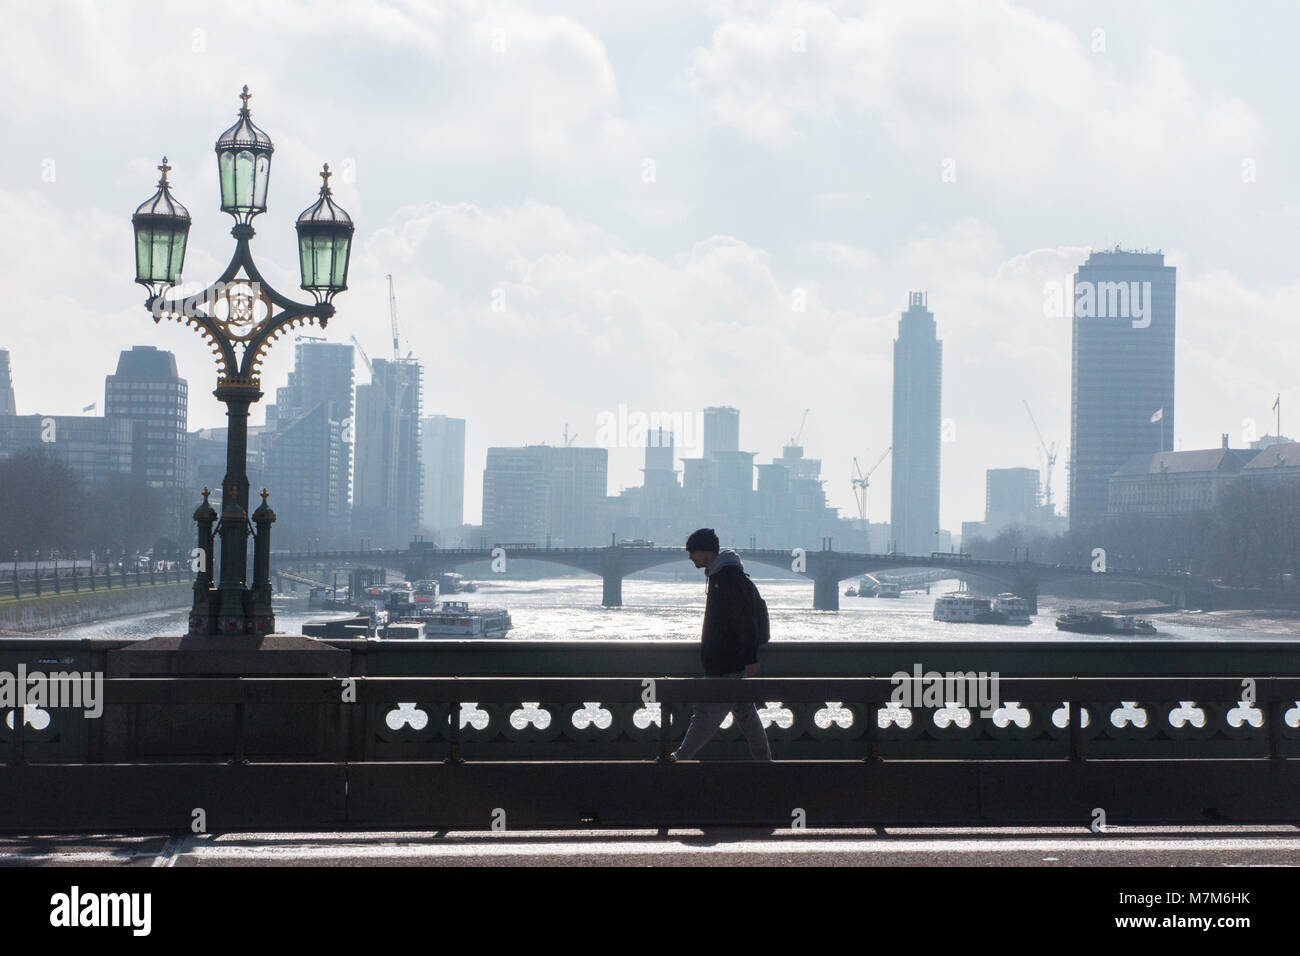 A pedestrian crosses the River Thames on a cold and misty morning - Stock Image